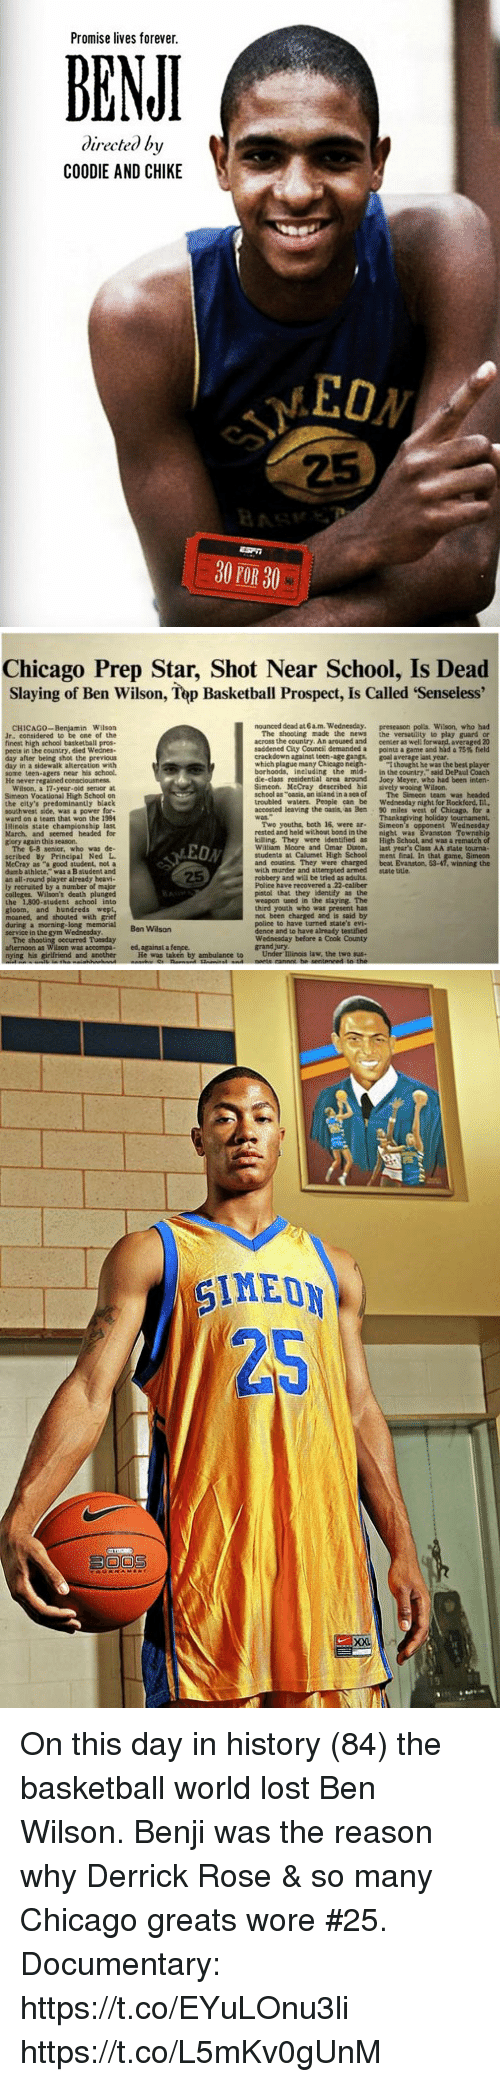 "Basketball, Chicago, and Derrick Rose: Promise lives forever.  BEN  directed by  COODIE AND CHIKE  EON  25  30 POR 30   Chicago Prep Star, Shot Near School, Is Dead  Slaying of Ben Wilson, Tep Basketball Prospect, Is Called 'Senseless'  CHICAG0-Benjamin Wilson  Jr.. considered to be one of the  finest high school basketball pros-  eets in the country, died Wednes-  nounced dead at 6a.m. Wednesday. preseason polls. Wilson, who had  The shooting made the news the versatility to play guard or  across the country. An aroused and center as well forward, averaged 20  saddened City Council demanded a ponu a game and had a 75% field  day after being shot the  crackdown against teen-age gangs, goal average last year  day in a sidewalk altercation with  some teen-agers near his school.  which plague many Chicago neghI thought he was the best player  borhoods, including the mid-in the country,"" said DePaul Coach  dle-class residential area around Joey Meyer, who had been inten  He never regained consciousness  Simeon. MeCray described his  sively wooing Wilson.  Wilson, a 17-year-old senior at  Simeon Vocational High School on  the city's predominantly black  school as ""oasis, an island in a sea of The Simeon team was headed  troubled waters. People can be Wednesday night for Rockford, Ii.,  accosted leaving the oasis, as Ben 90 miles west of Chicago, for a  Thanksgiving holiday tournament.  Two youths, both 16, were ar Simeon's opponent Wednesday  rested and held without bond in the night was Evanston Township  killing. They were identified as High School, and was a rematch of  William Moore and Omar Dixon, last year's Class AA state tourna  students at Calumet High School ment final. In that game. Simeon  and cousins. They were charged beat Evanston, 53-47, winning the  ward on a team that won the 1984  Illinois state championship last  March, and seemed headed for  glory again this season.  ED  25  The 6-8 senior, who was de-  seribed By Principal Ned L  McCray as ""a good student, not a  dumb athlete,"" was a B student and  an all-round player already heavi-  ly recruited by a number of major  colleges, Wilson's death plunged  the 1,800-student school into  gloom, and hundreds wept,  moaned, and shouted with grief  with murder and attempted armed state title.  robbery and will be tried as adults.  Police have recovered a 22-calber  pistol that they identify as the  weapon used in the slaying. The  youth who was  not been charged and is said by  police to have turned state's evi-  dence and to have already testified  Wednesday before a Cook County  memorial Ben Wilson  service in the gym Wednesday  The shooting occurred Tuesday  ed, against a fence.  nying his girlfriend and another He was taken by ambulance to Under Ilinois law, the two sus- On this day in history (84) the basketball world lost Ben Wilson.  Benji was the reason why Derrick Rose & so many Chicago greats wore #25.   Documentary: https://t.co/EYuLOnu3li https://t.co/L5mKv0gUnM"